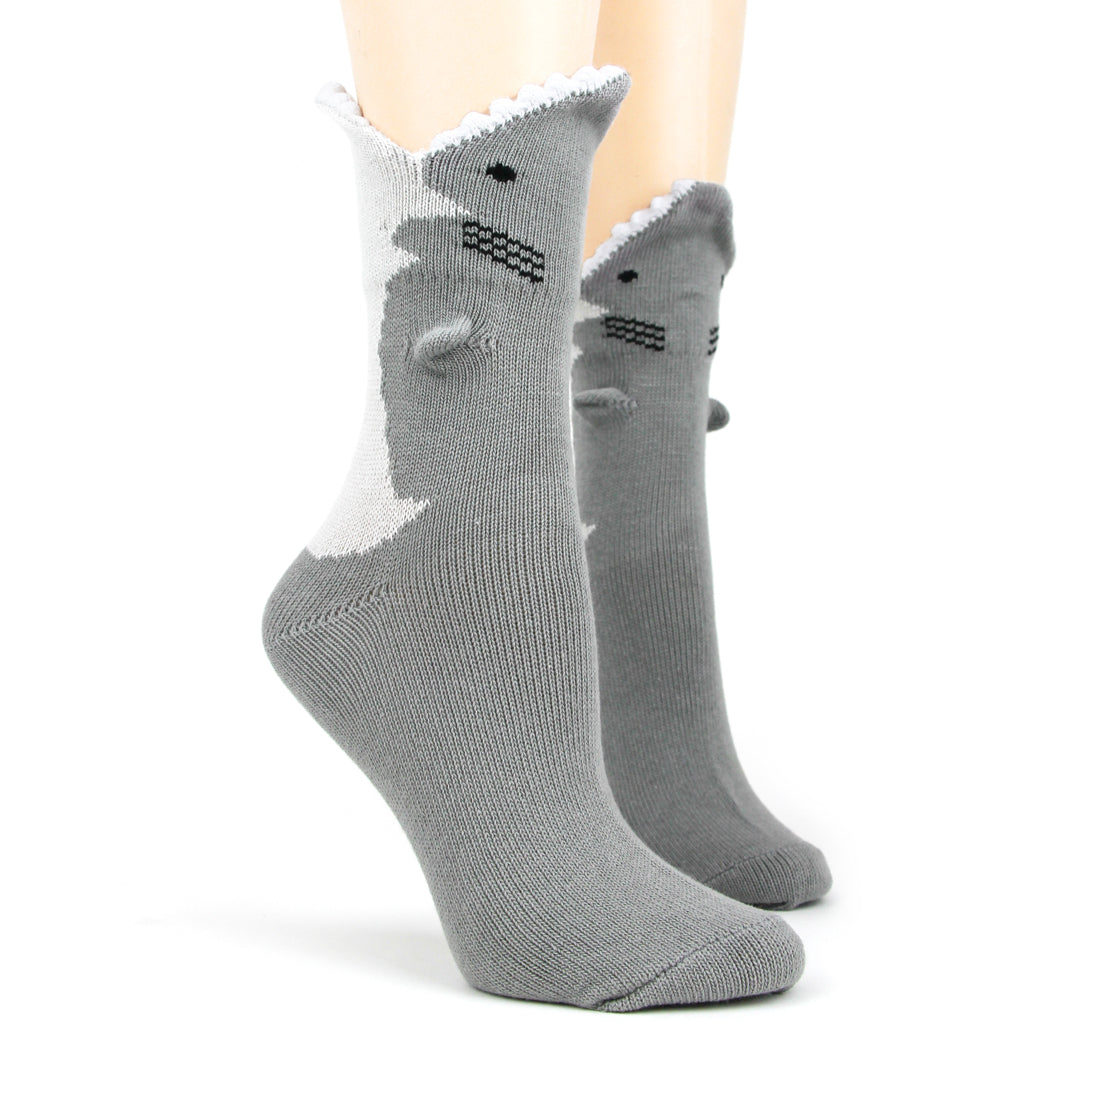 Great White 3D Socks